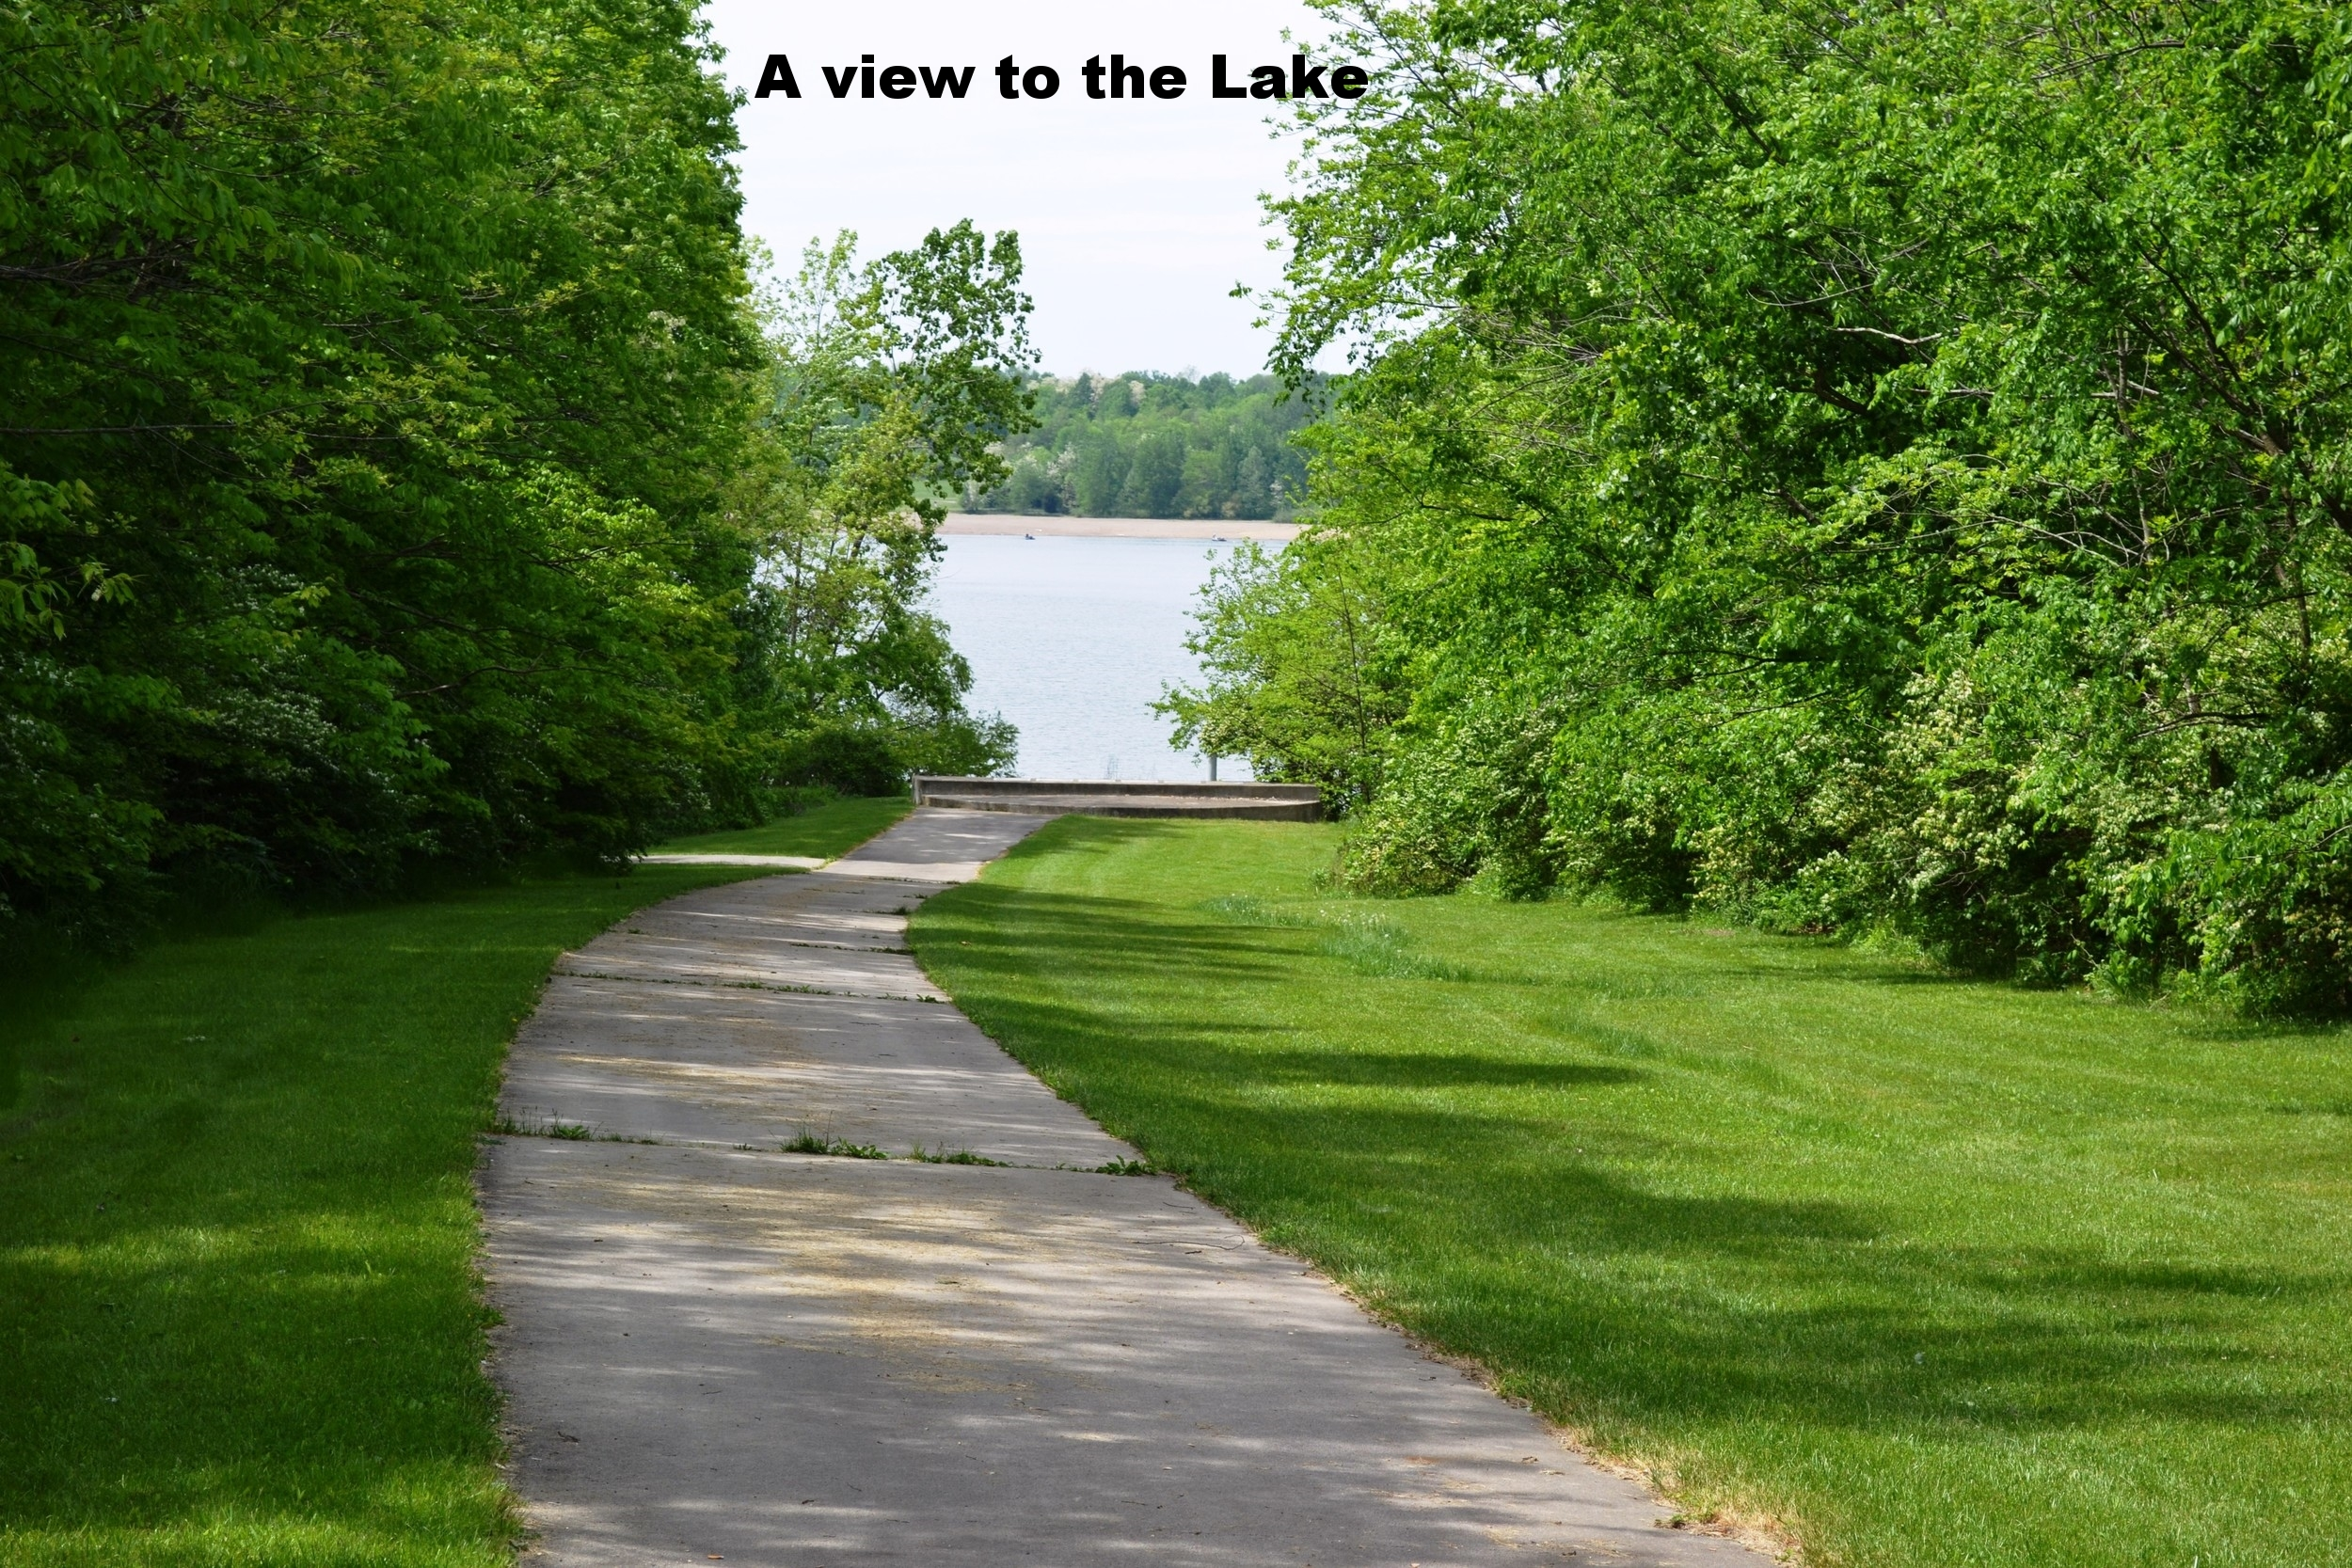 A view to the Lake